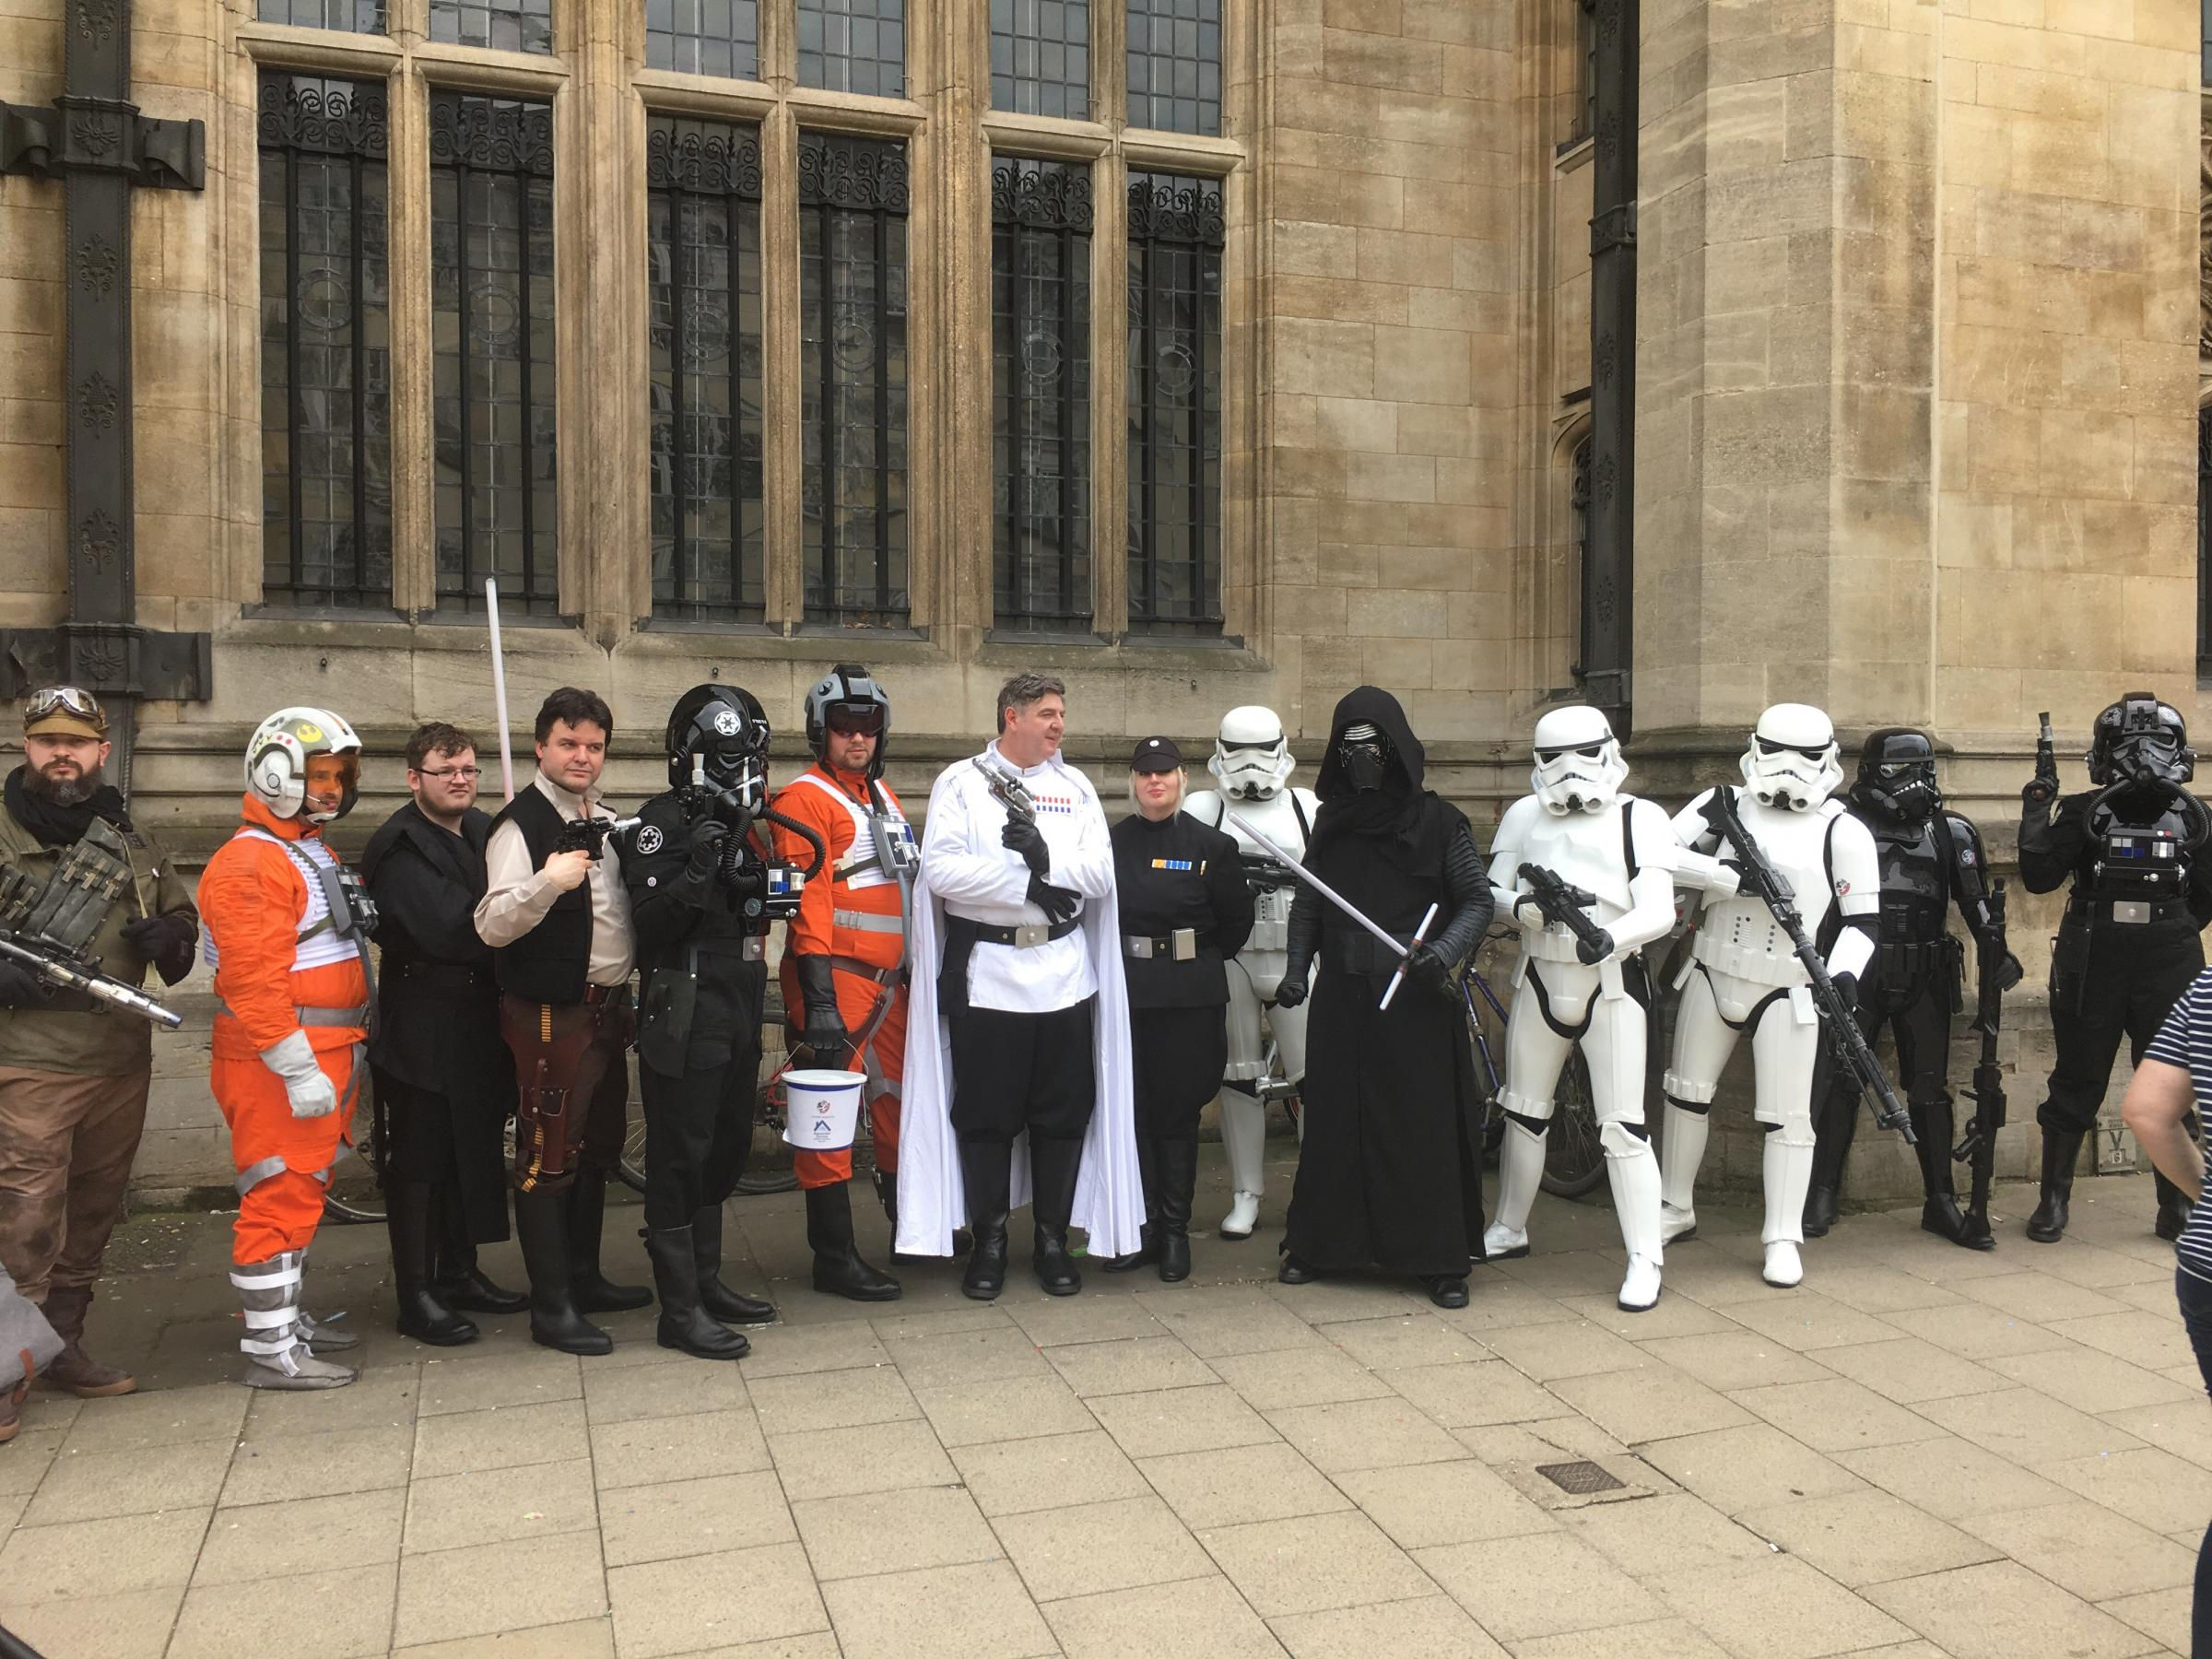 Oxford Comic Con visitors gather in High Street